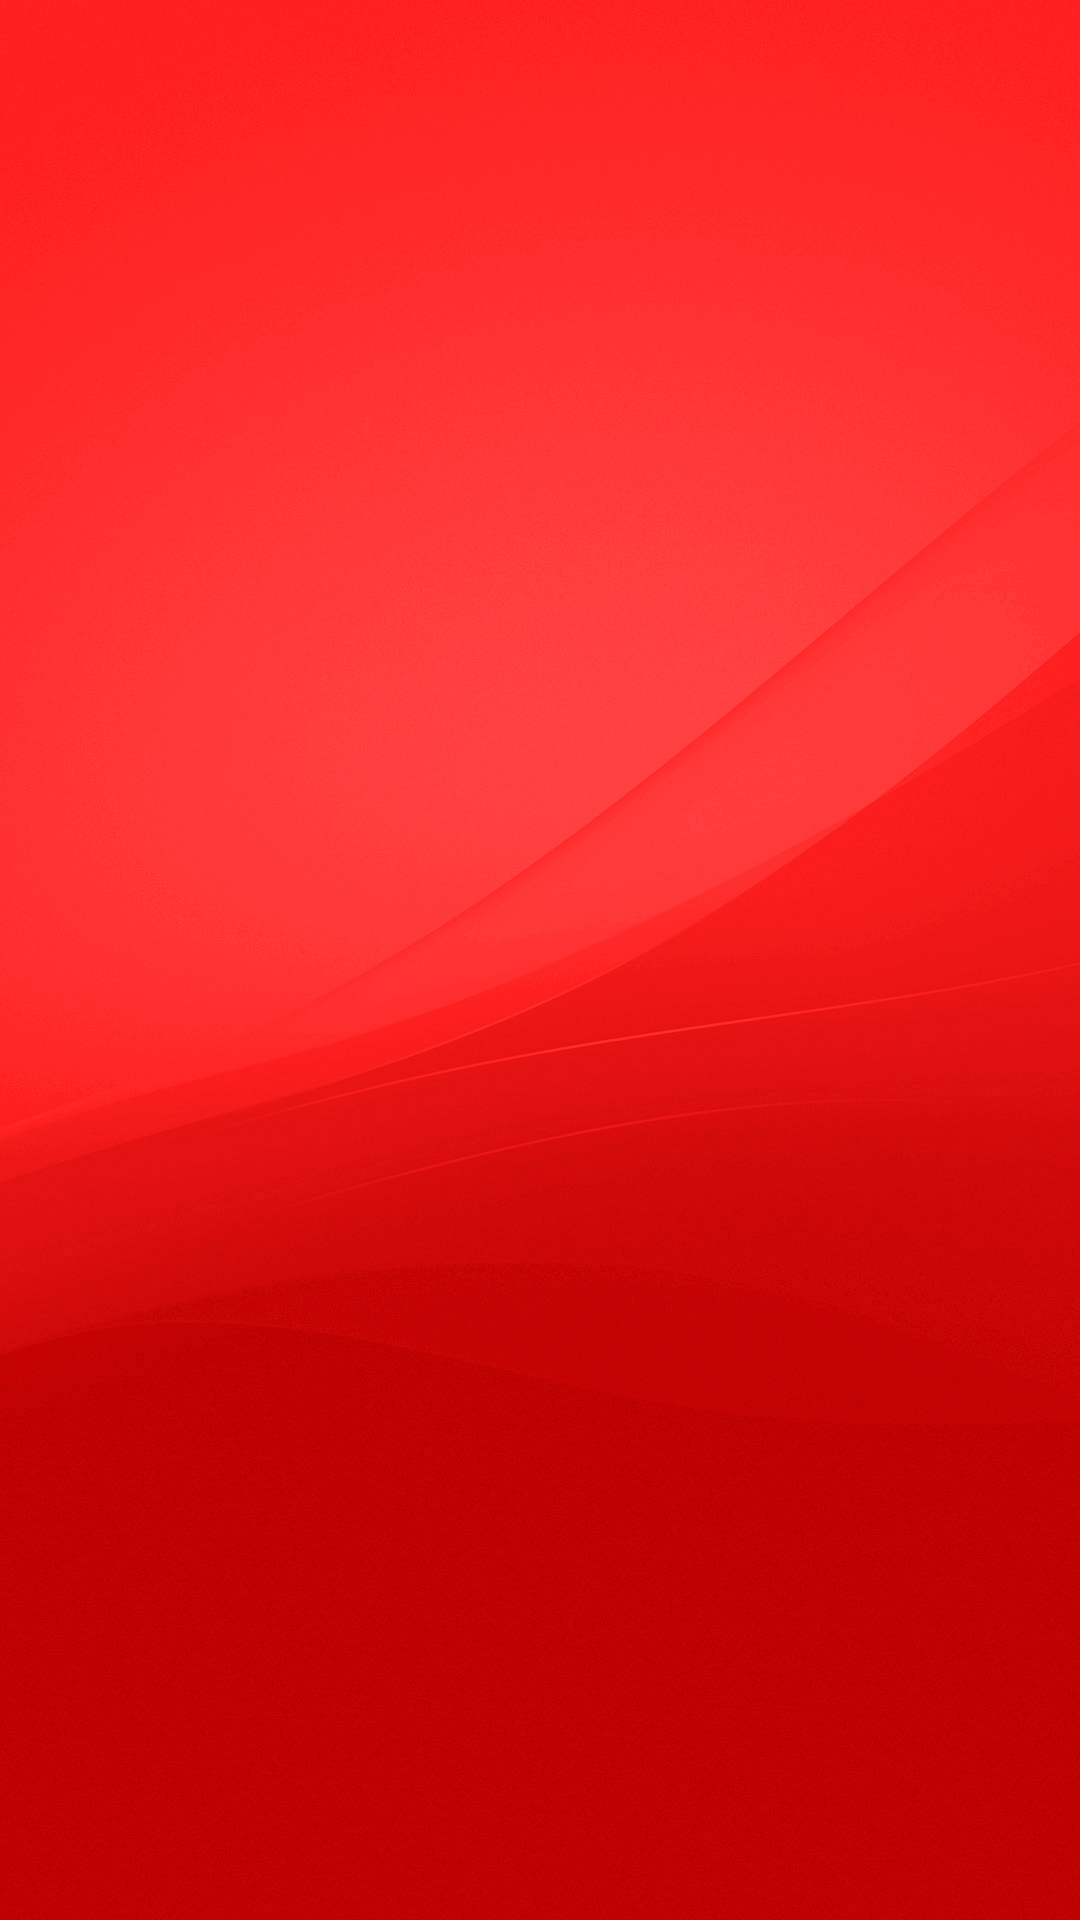 Pinterest Windows Xperia Lollipop Red Wallpaper Gizmo Bolt Exposing